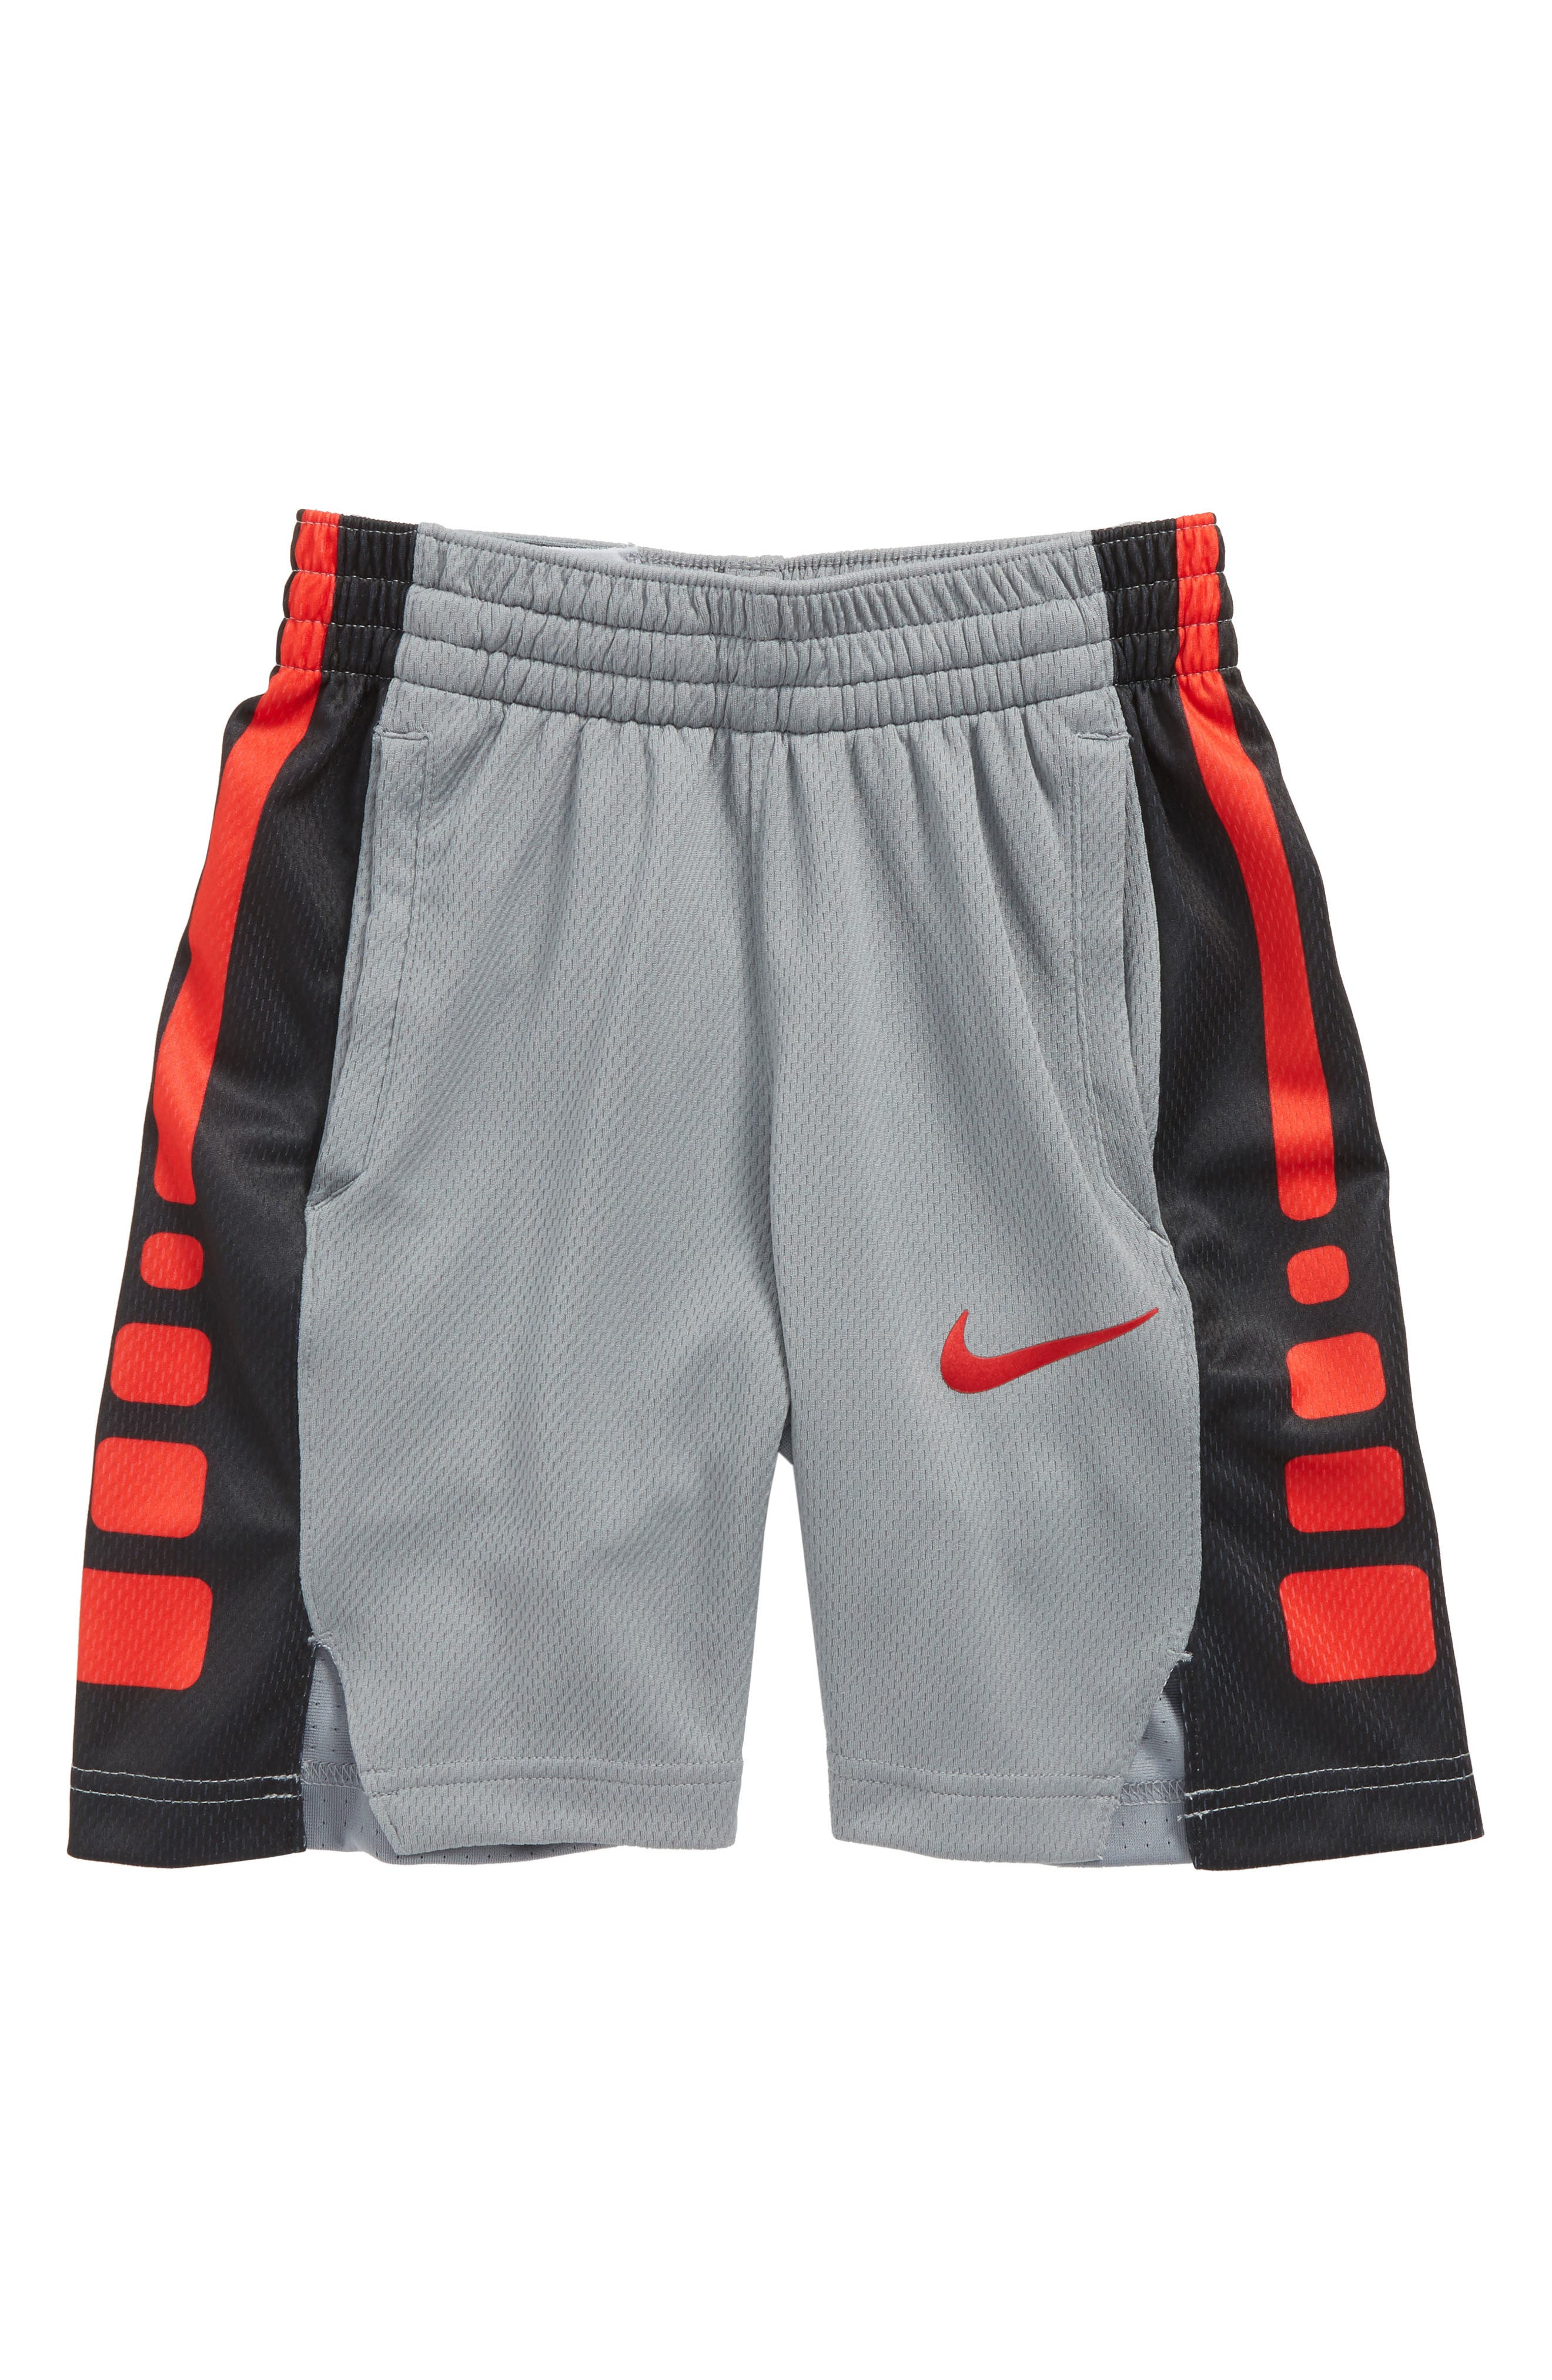 Dry Elite Basketball Shorts,                             Main thumbnail 32, color,